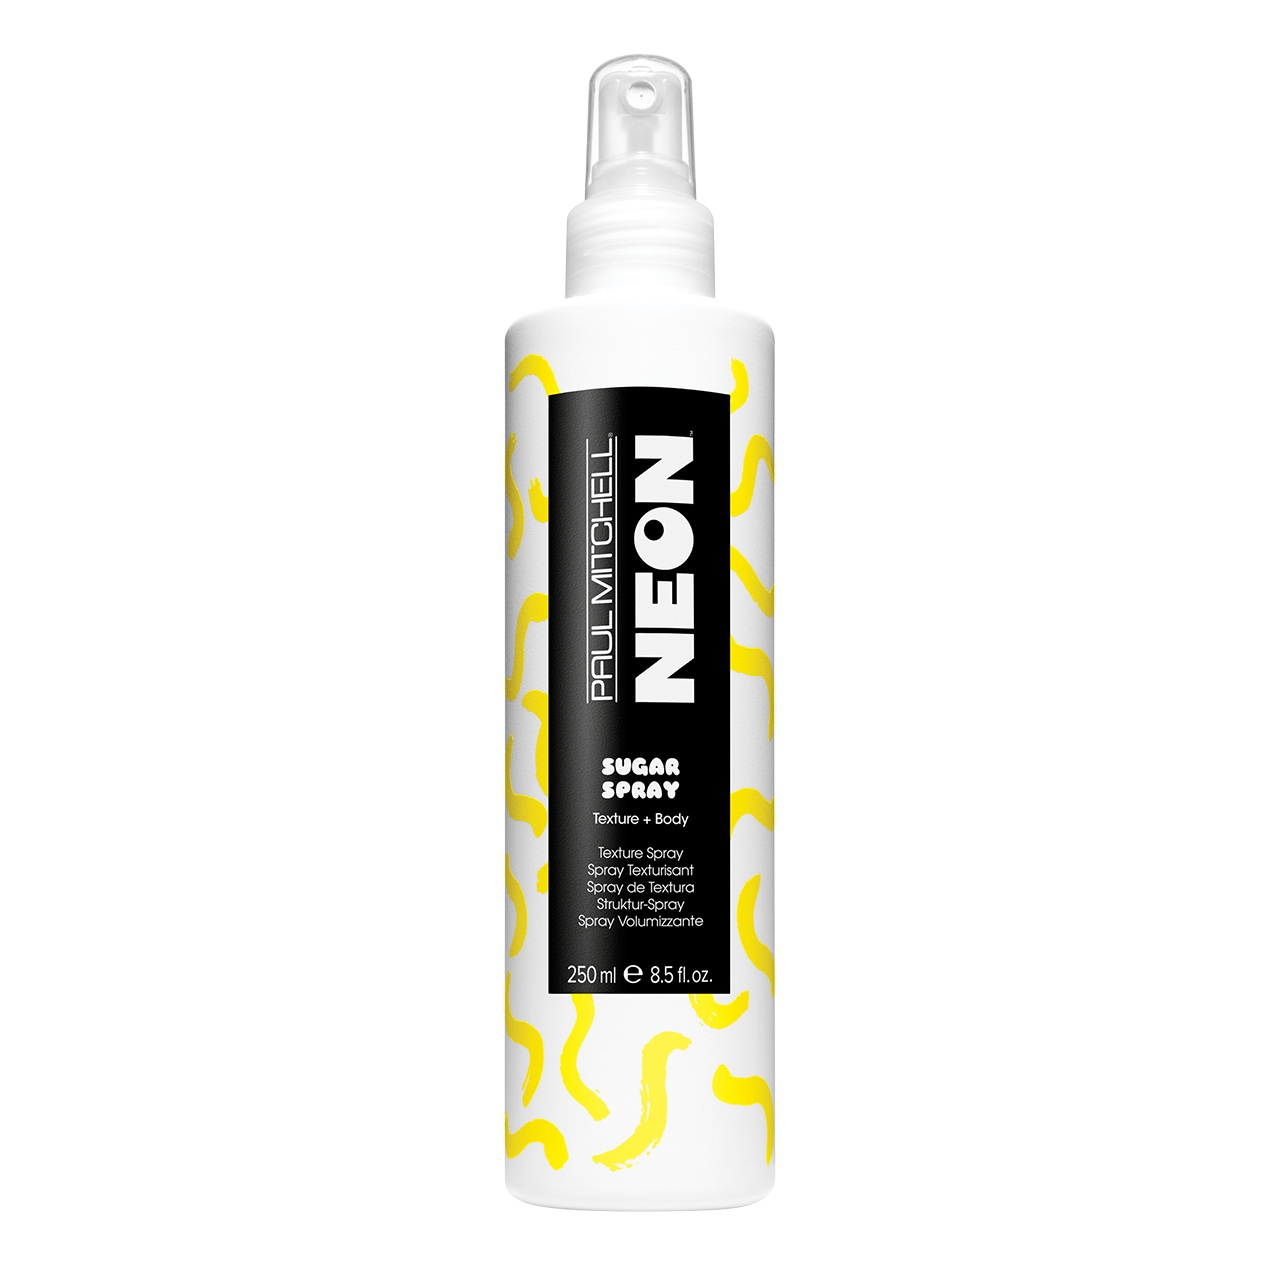 Paul Mitchell Sugar Spray Texturizer